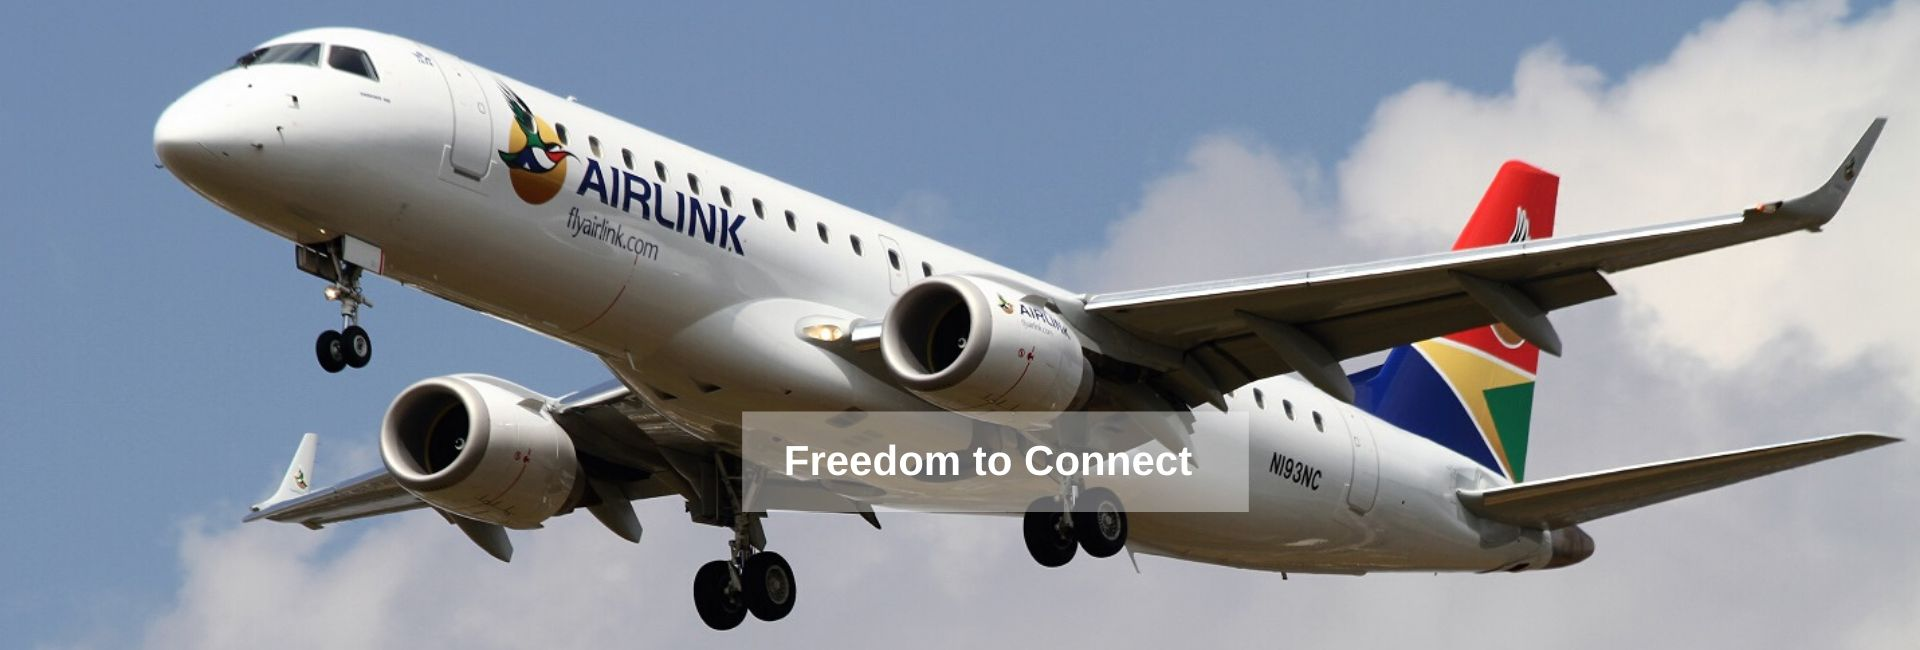 Airlink Freedom to Connect